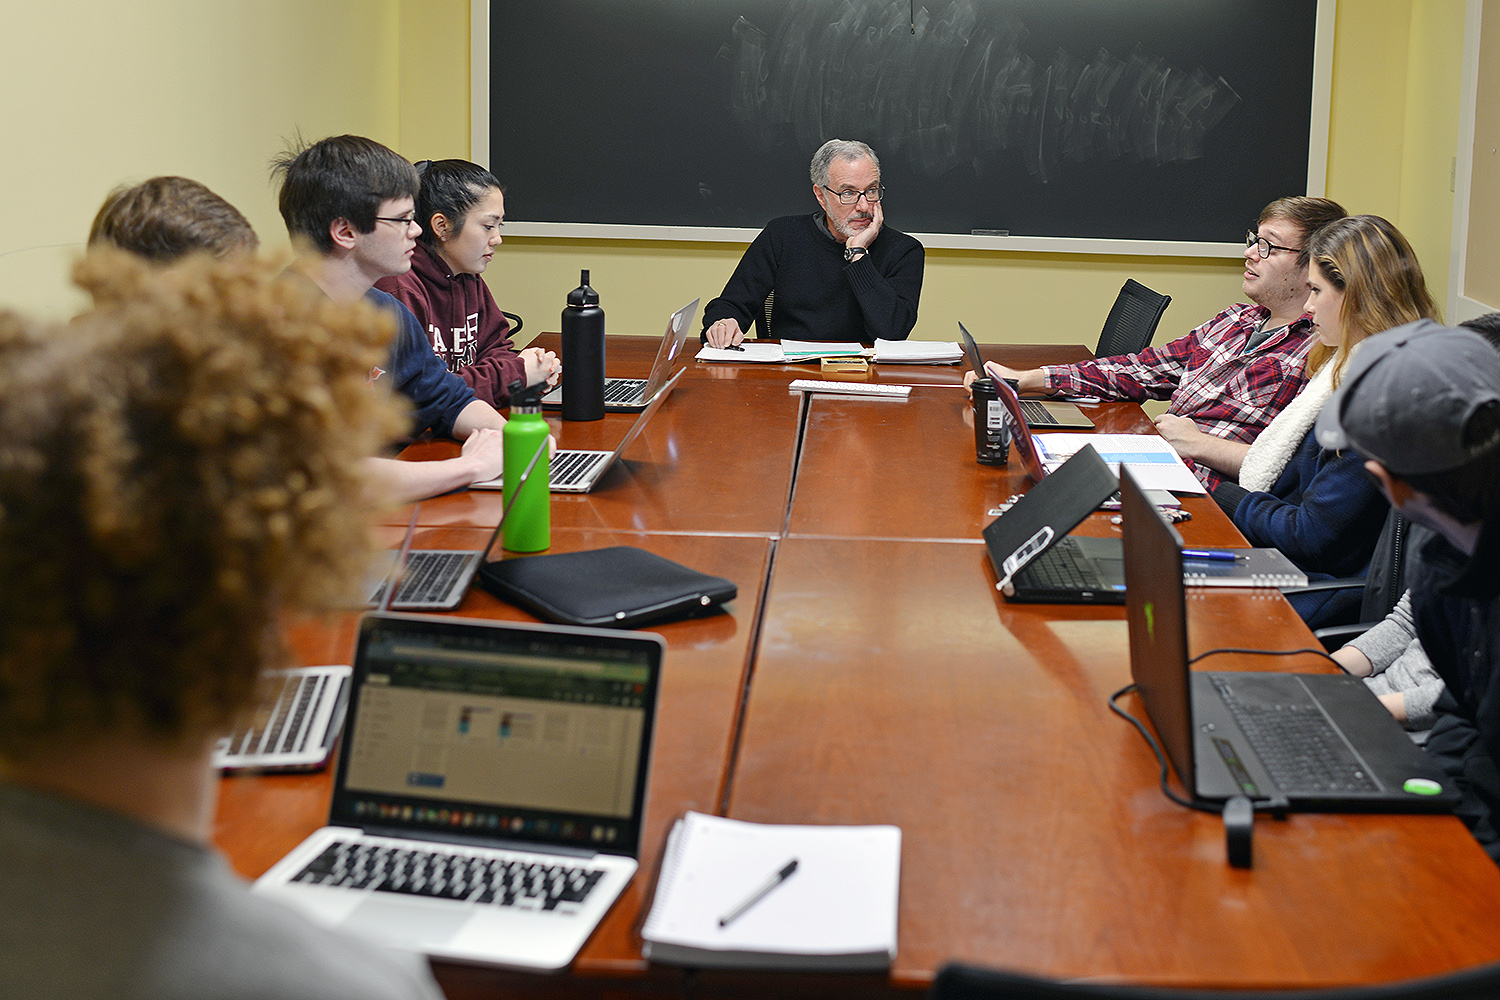 In Andy Szegedy-Maszak's Calderwood seminar, Classical Studies Today, nine juniors and seniors learn to translate weekly academic readings into writing that can be understood and appreciated by various audiences.